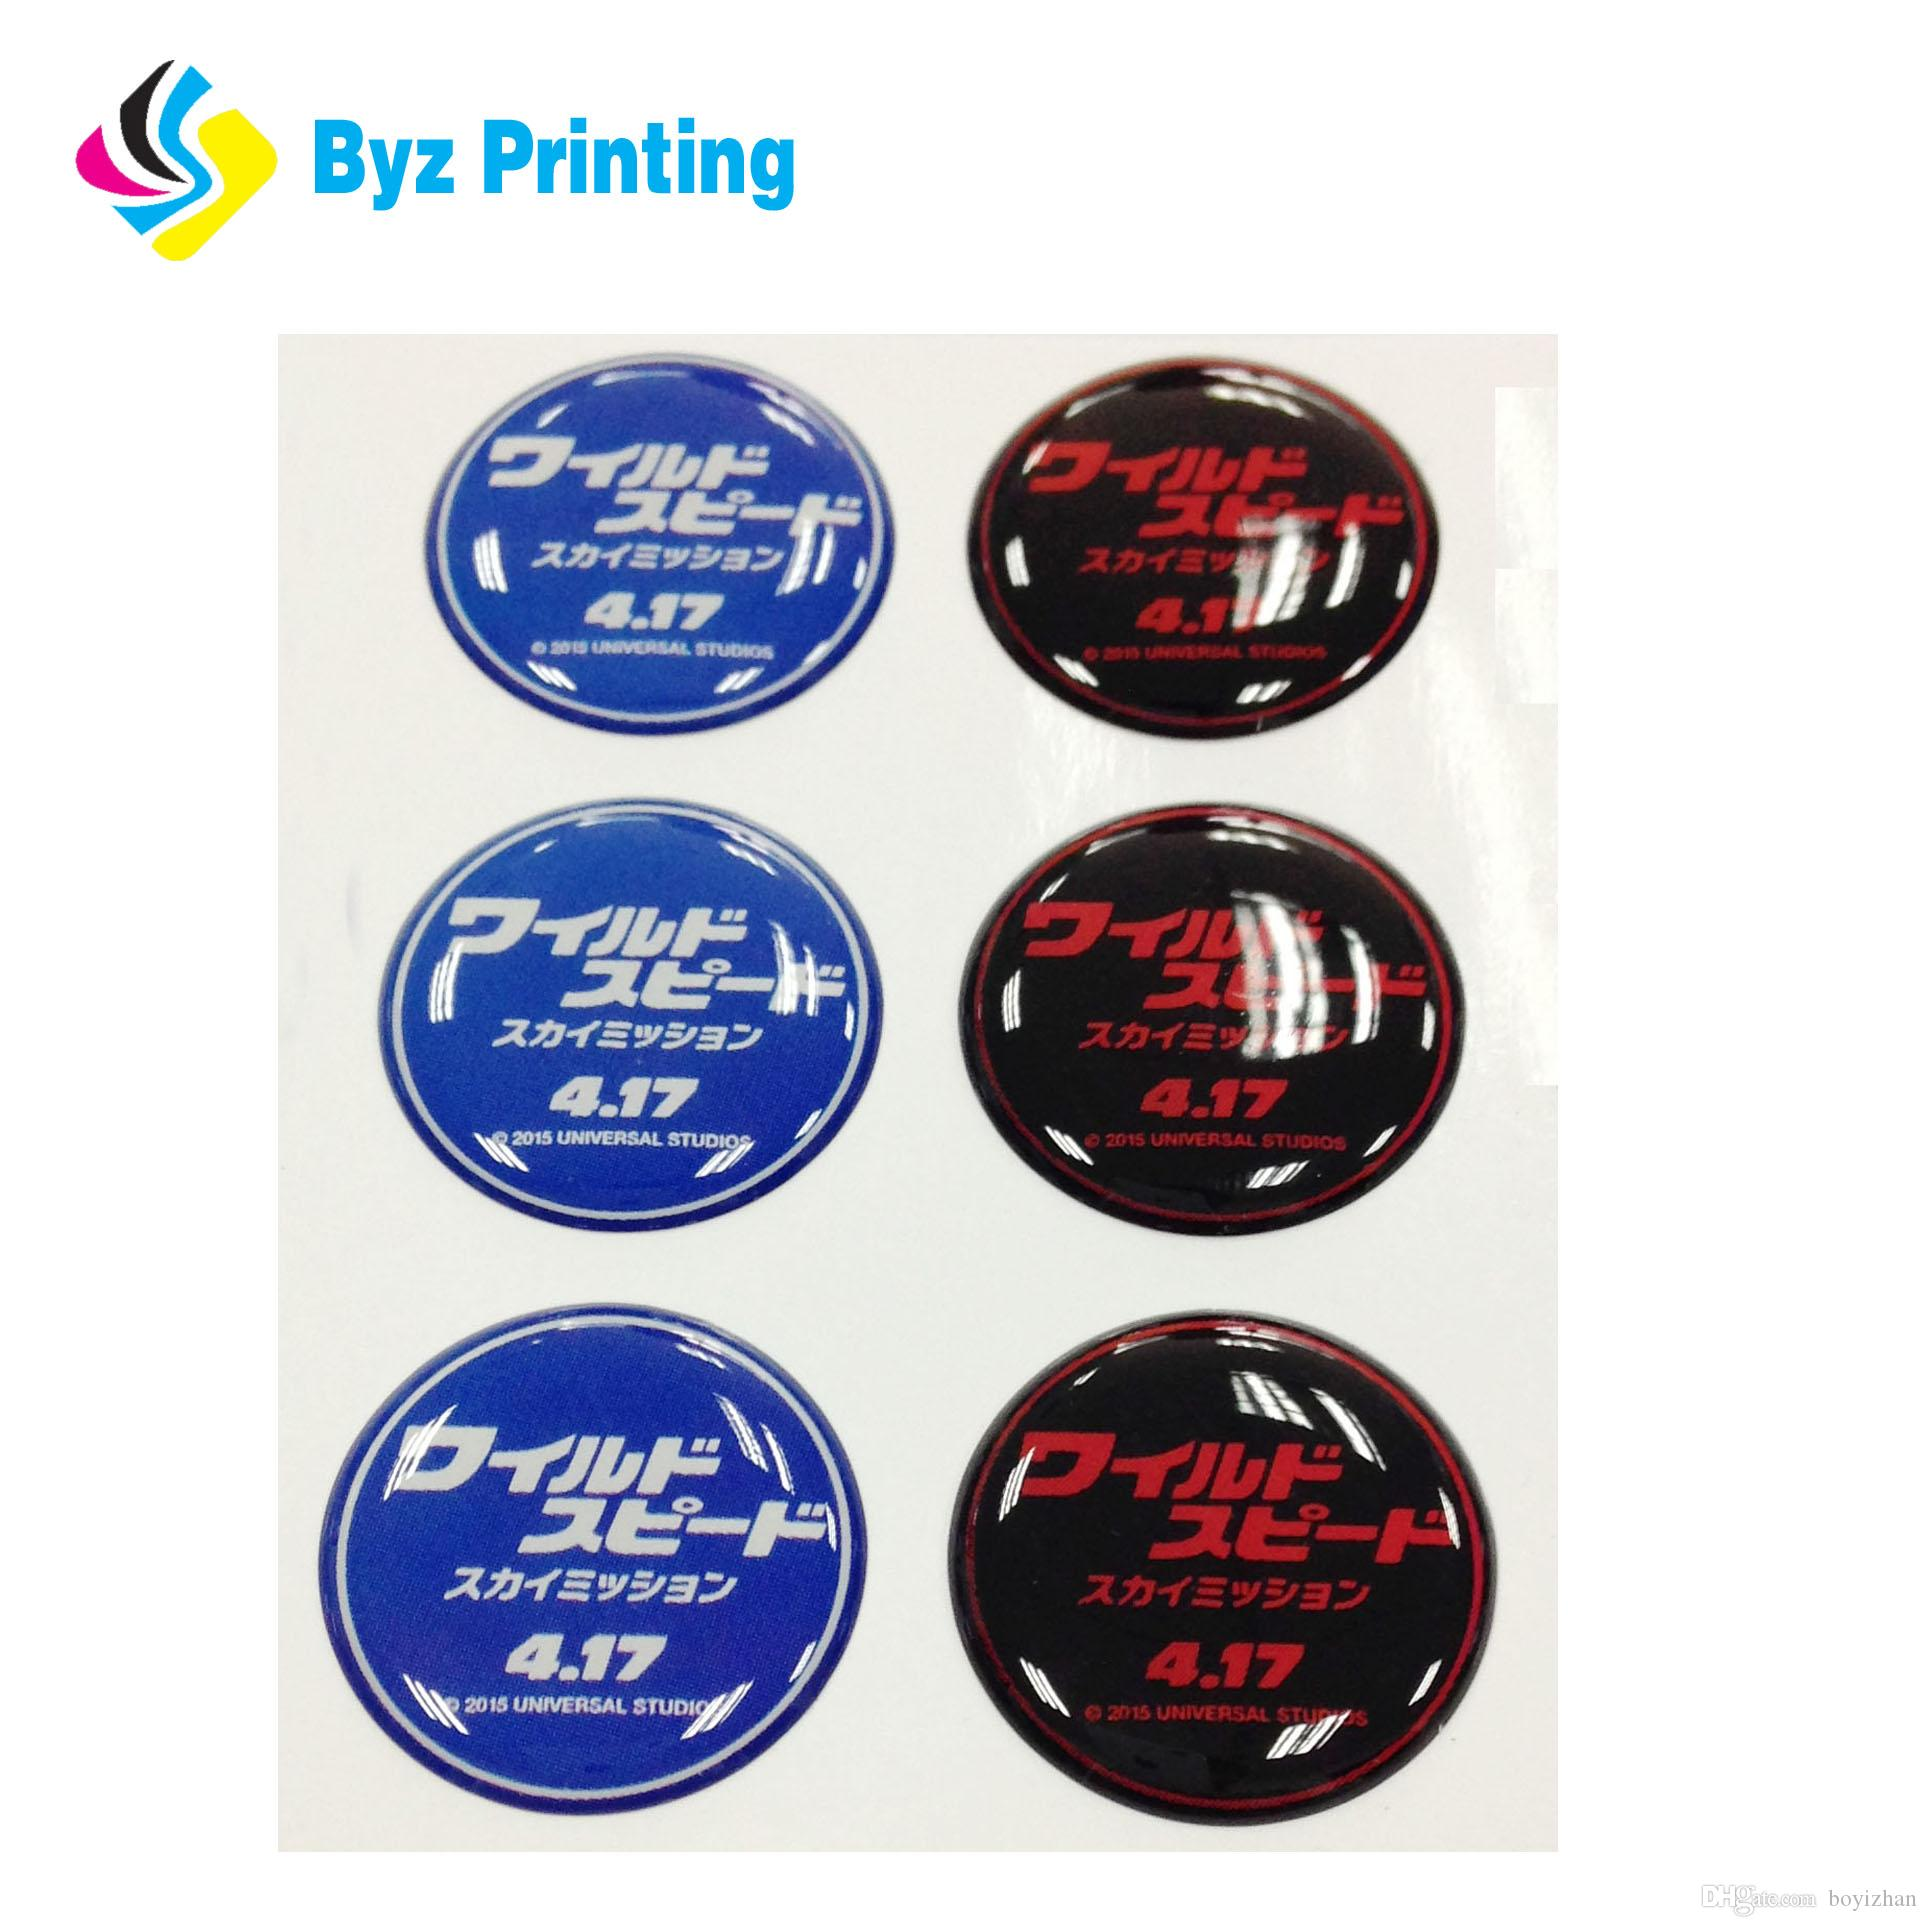 Top quality environmental printed epoxy resin stickercustom epoxy sticker custom dome sticker